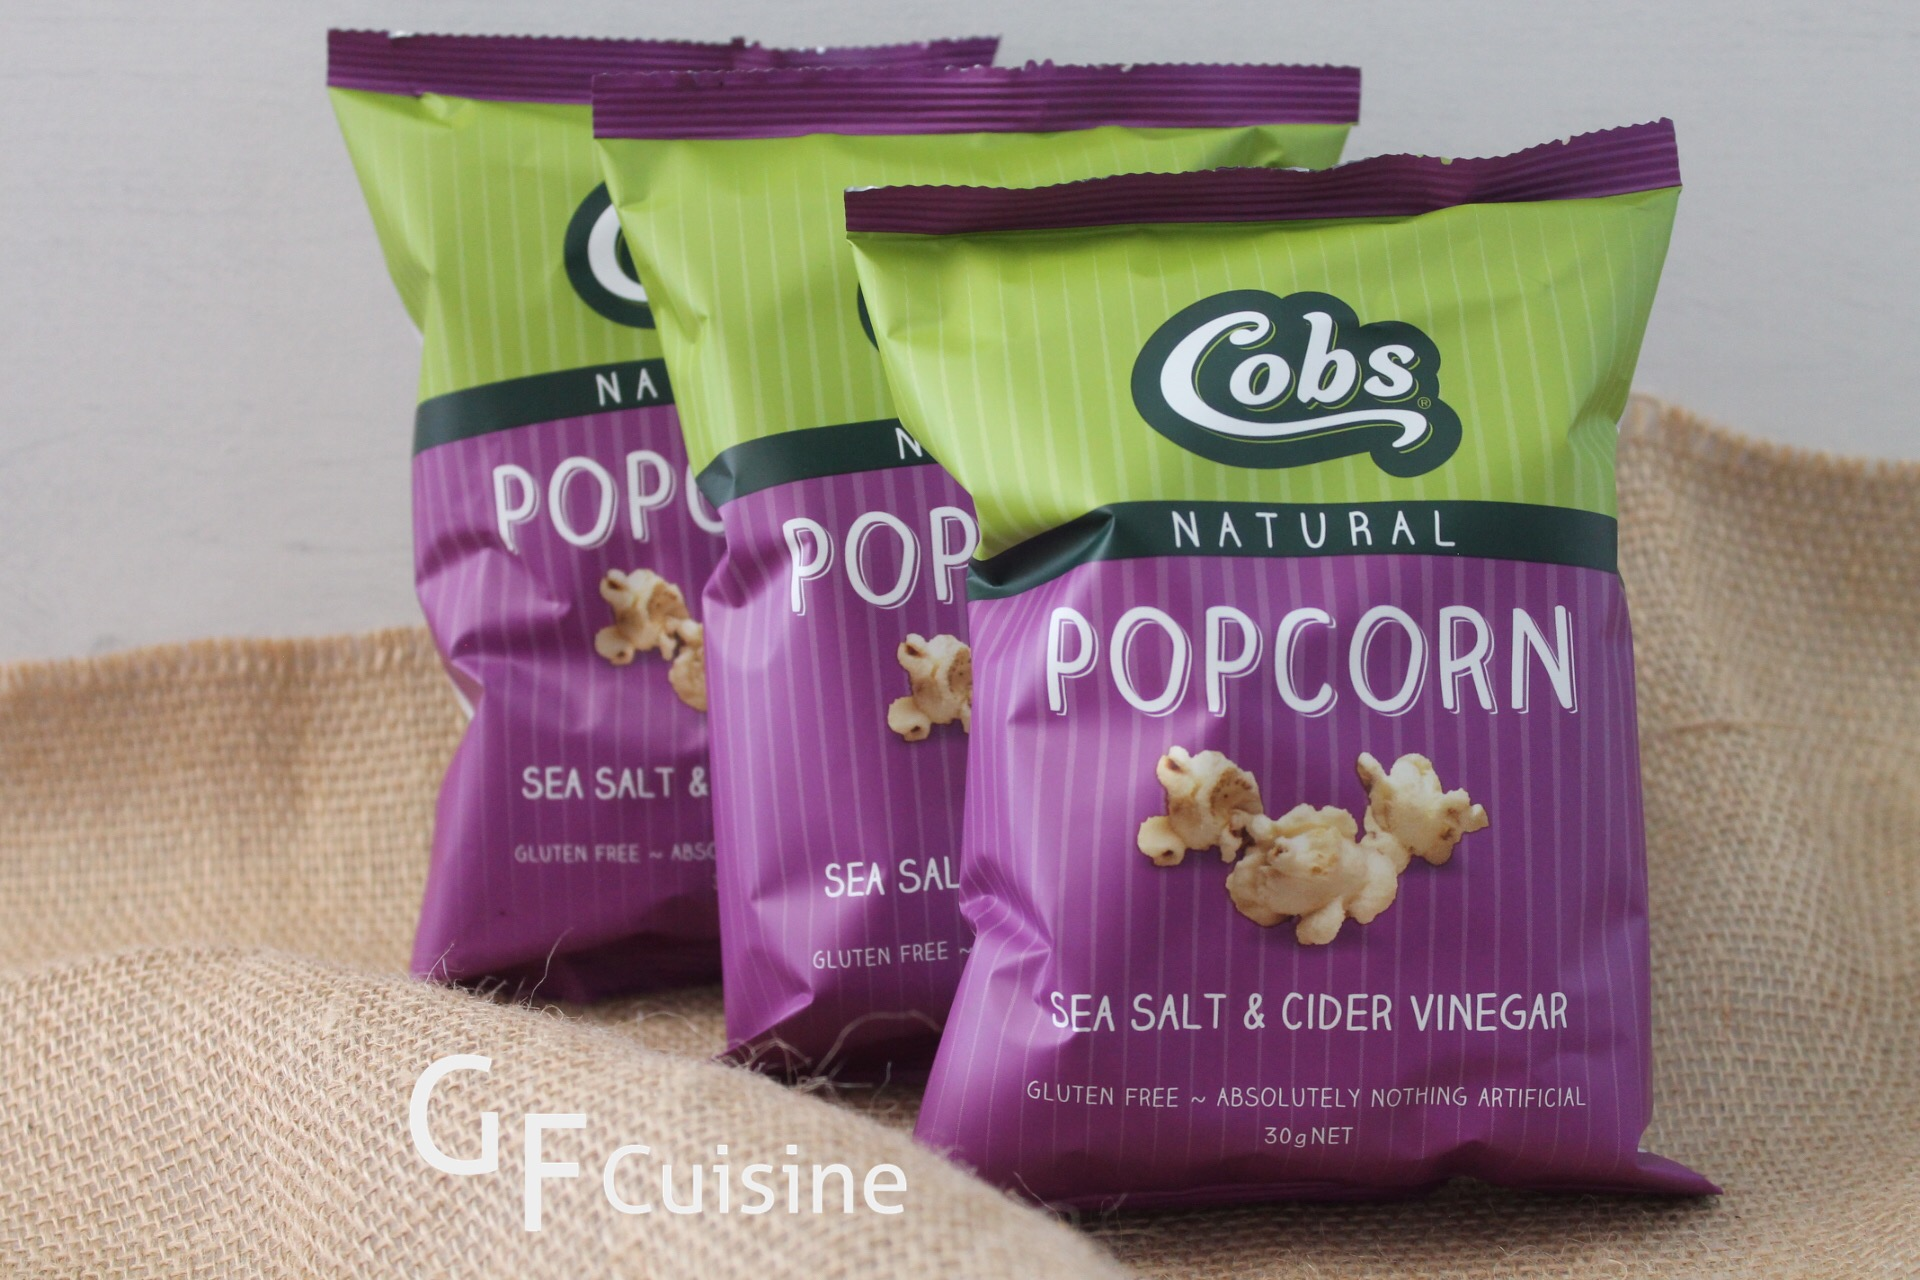 Cobs Popcorn Sea Salt & Cider Vinegar